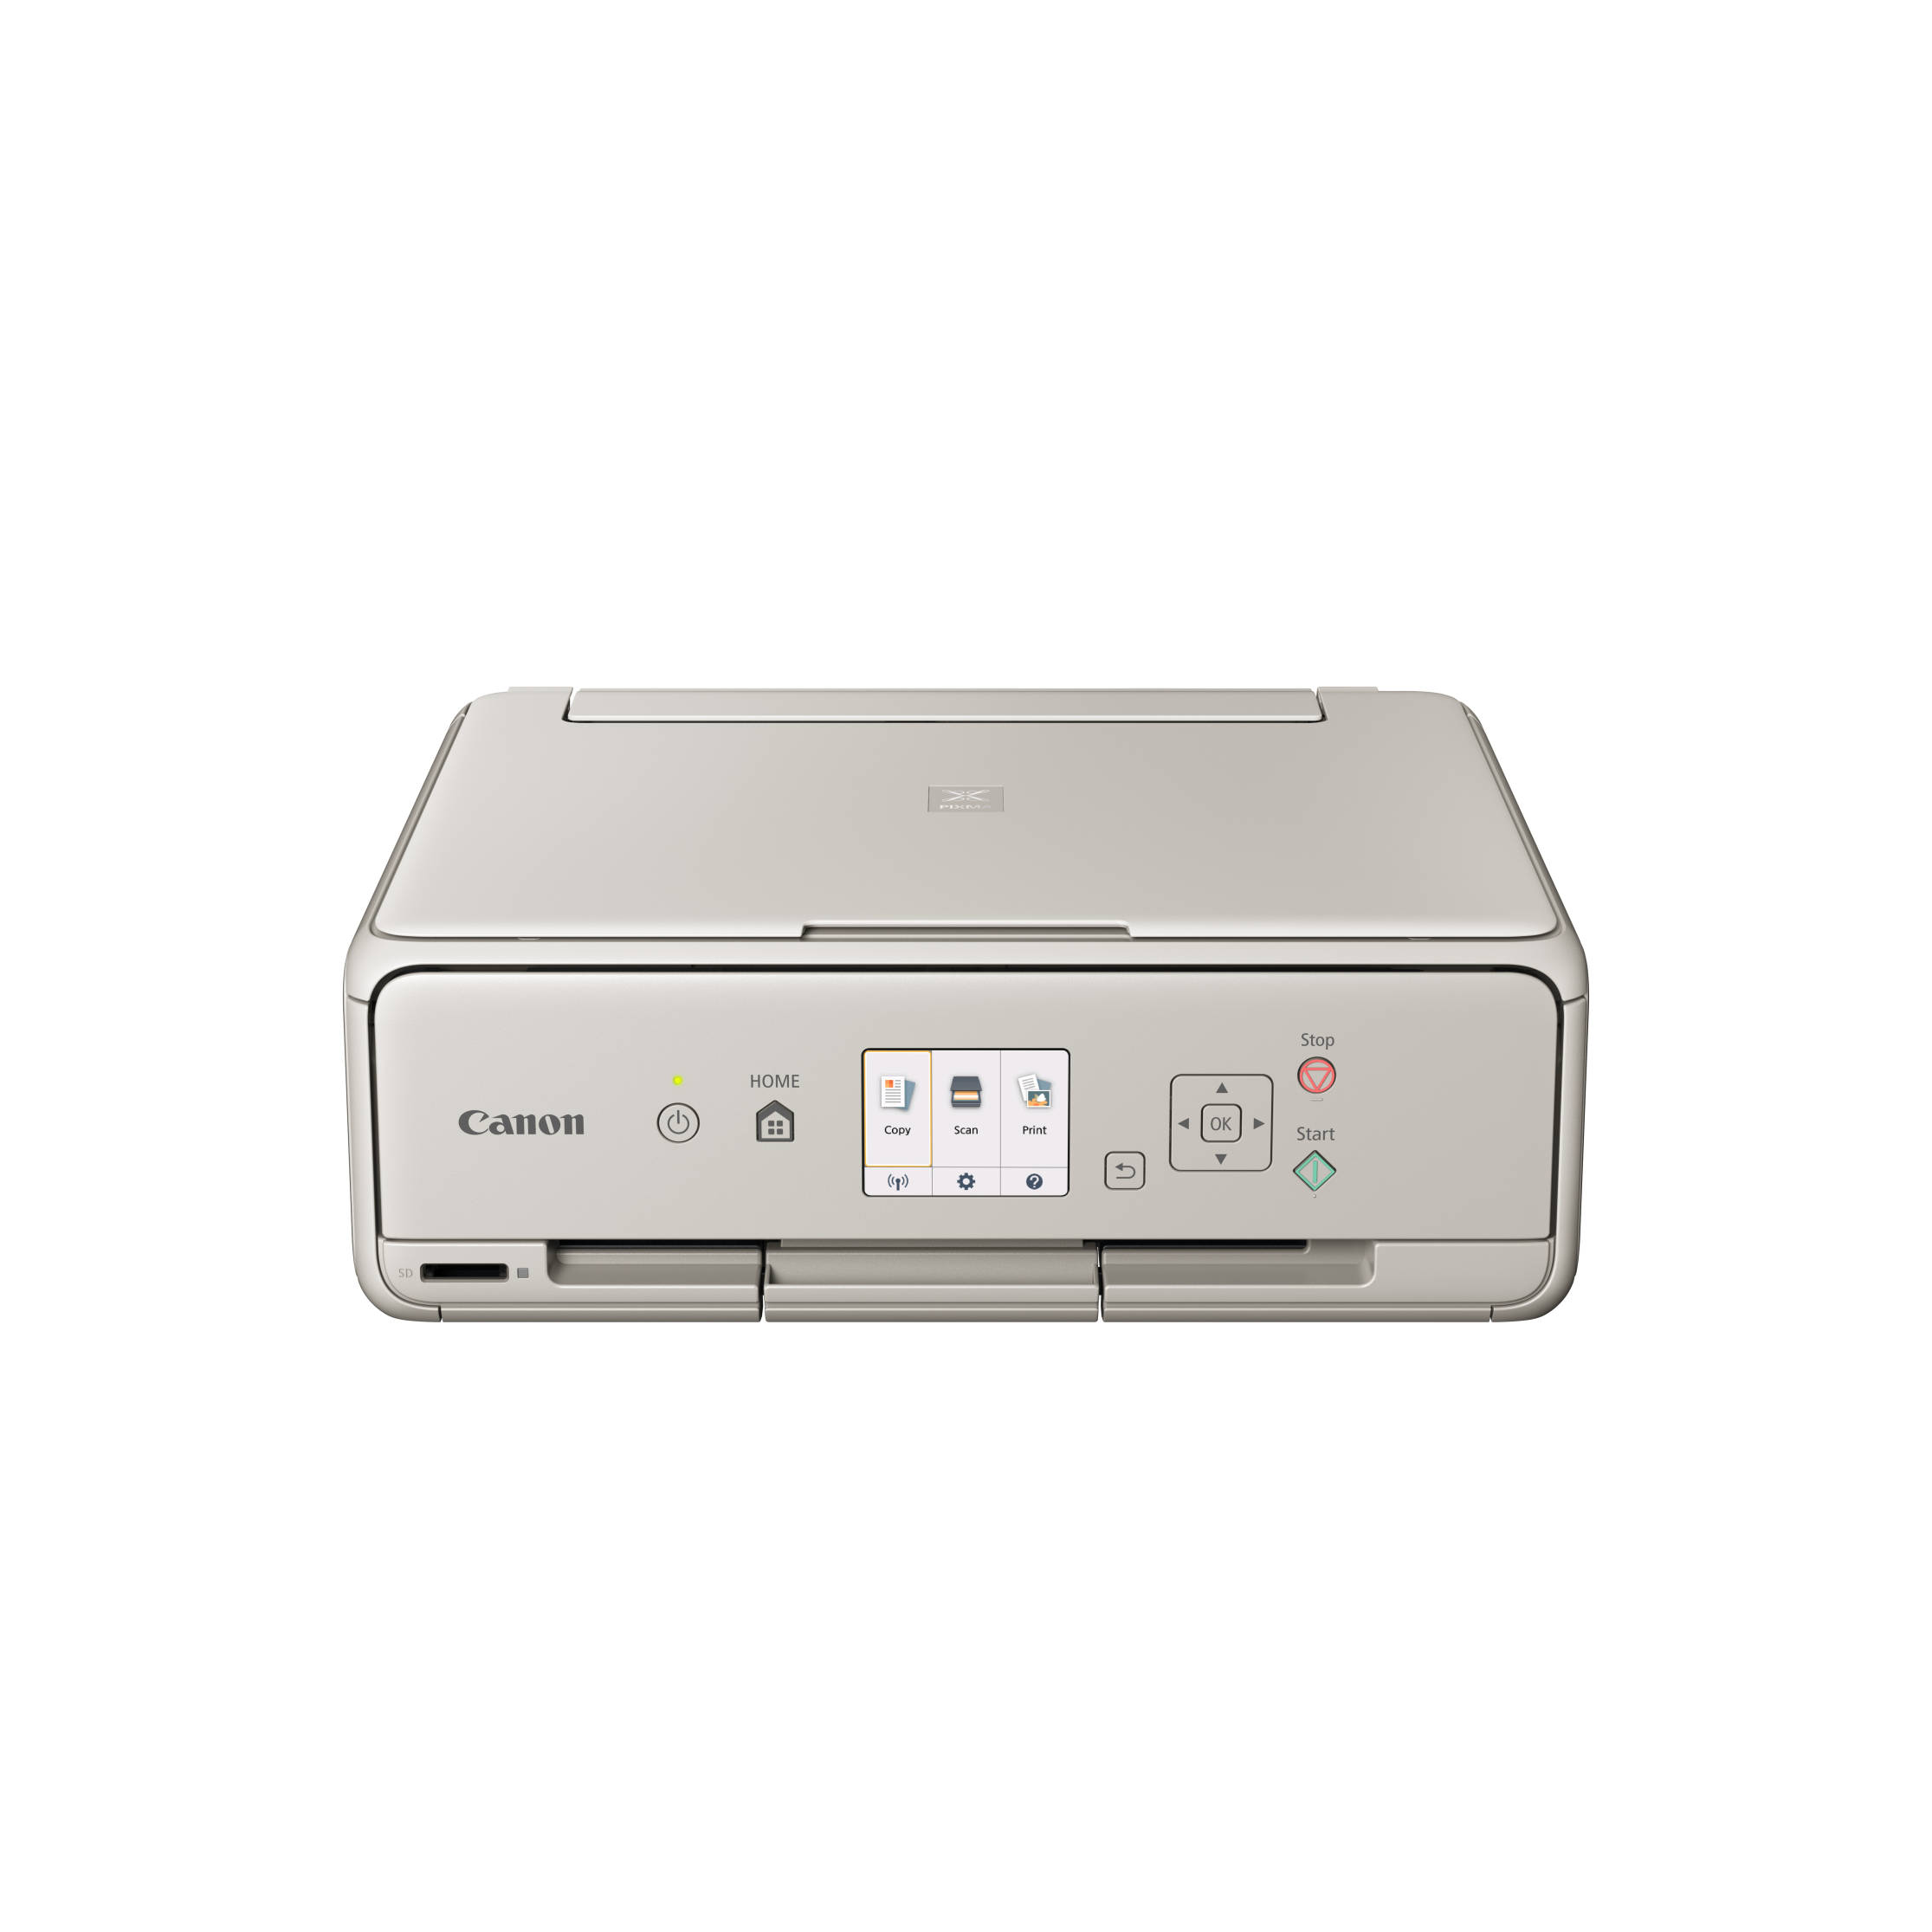 Canon PIXMA TS6052 - PSC/Wi-Fi/AP/WiFi-Direct/Duplex/PictBridge/4800x1200/USB grey +PP-201 PAPER